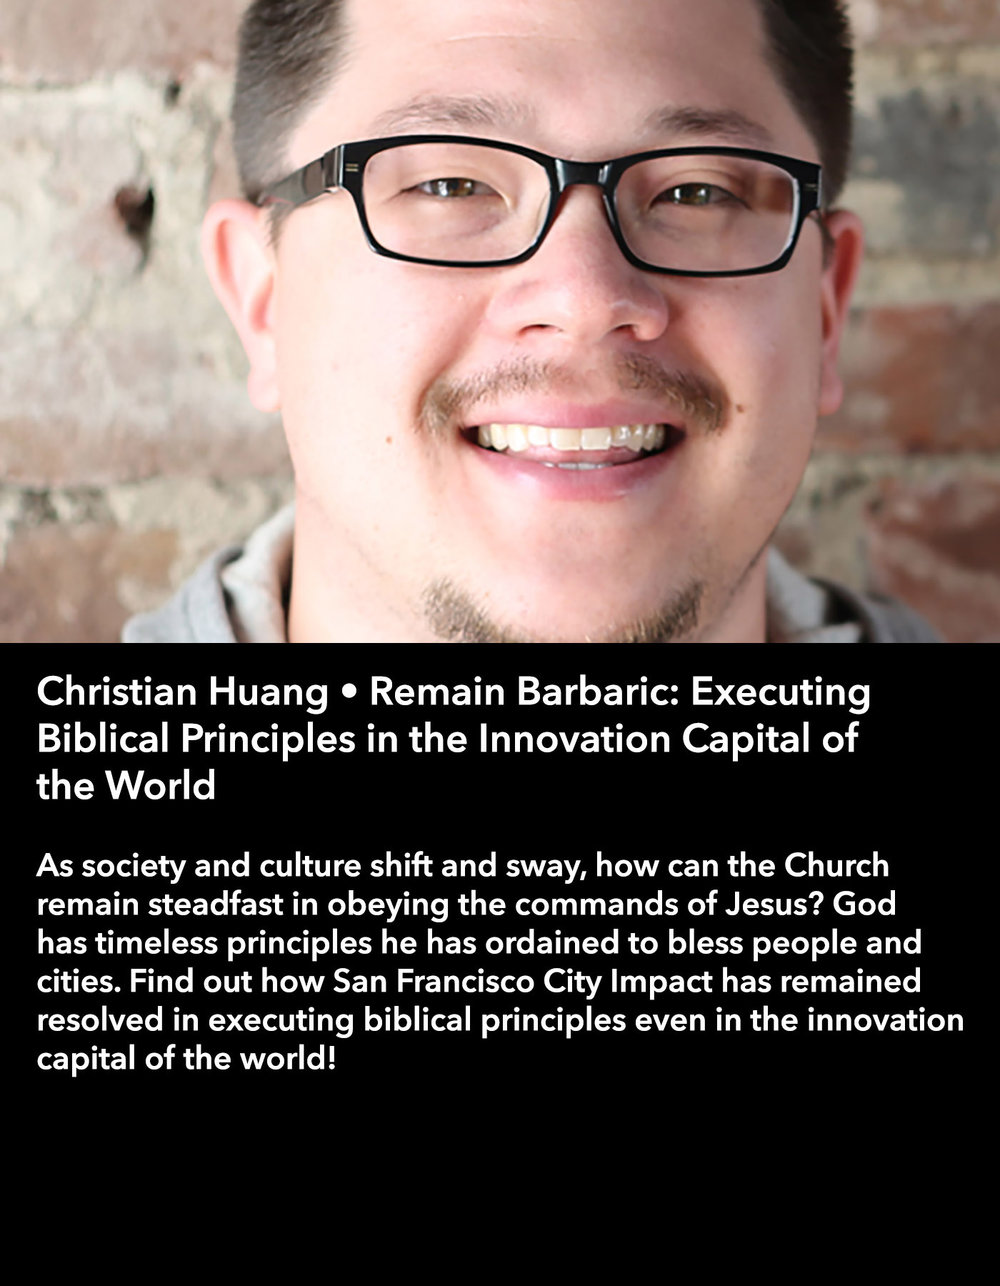 Christian Huang • Remain Barbaric: Executing Biblical Principles in the Innovation Capital of the World • Friday Morning, March 17 • 10:30 – 11:45 am